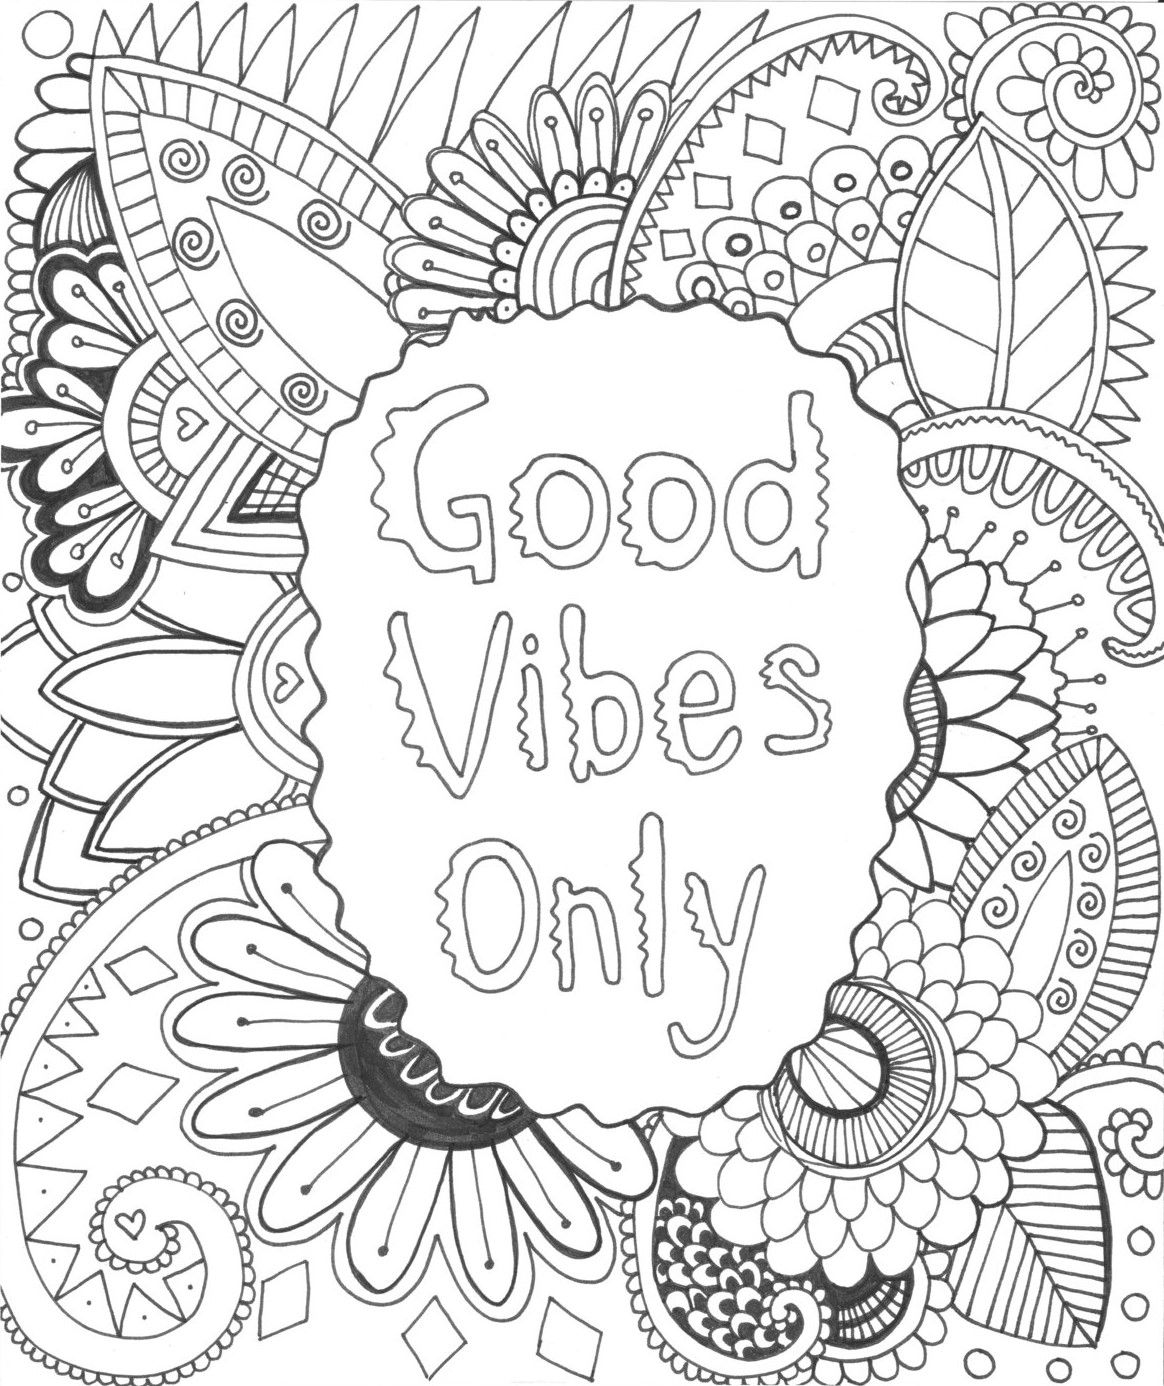 Good Vibes Only Coloring Page With Images